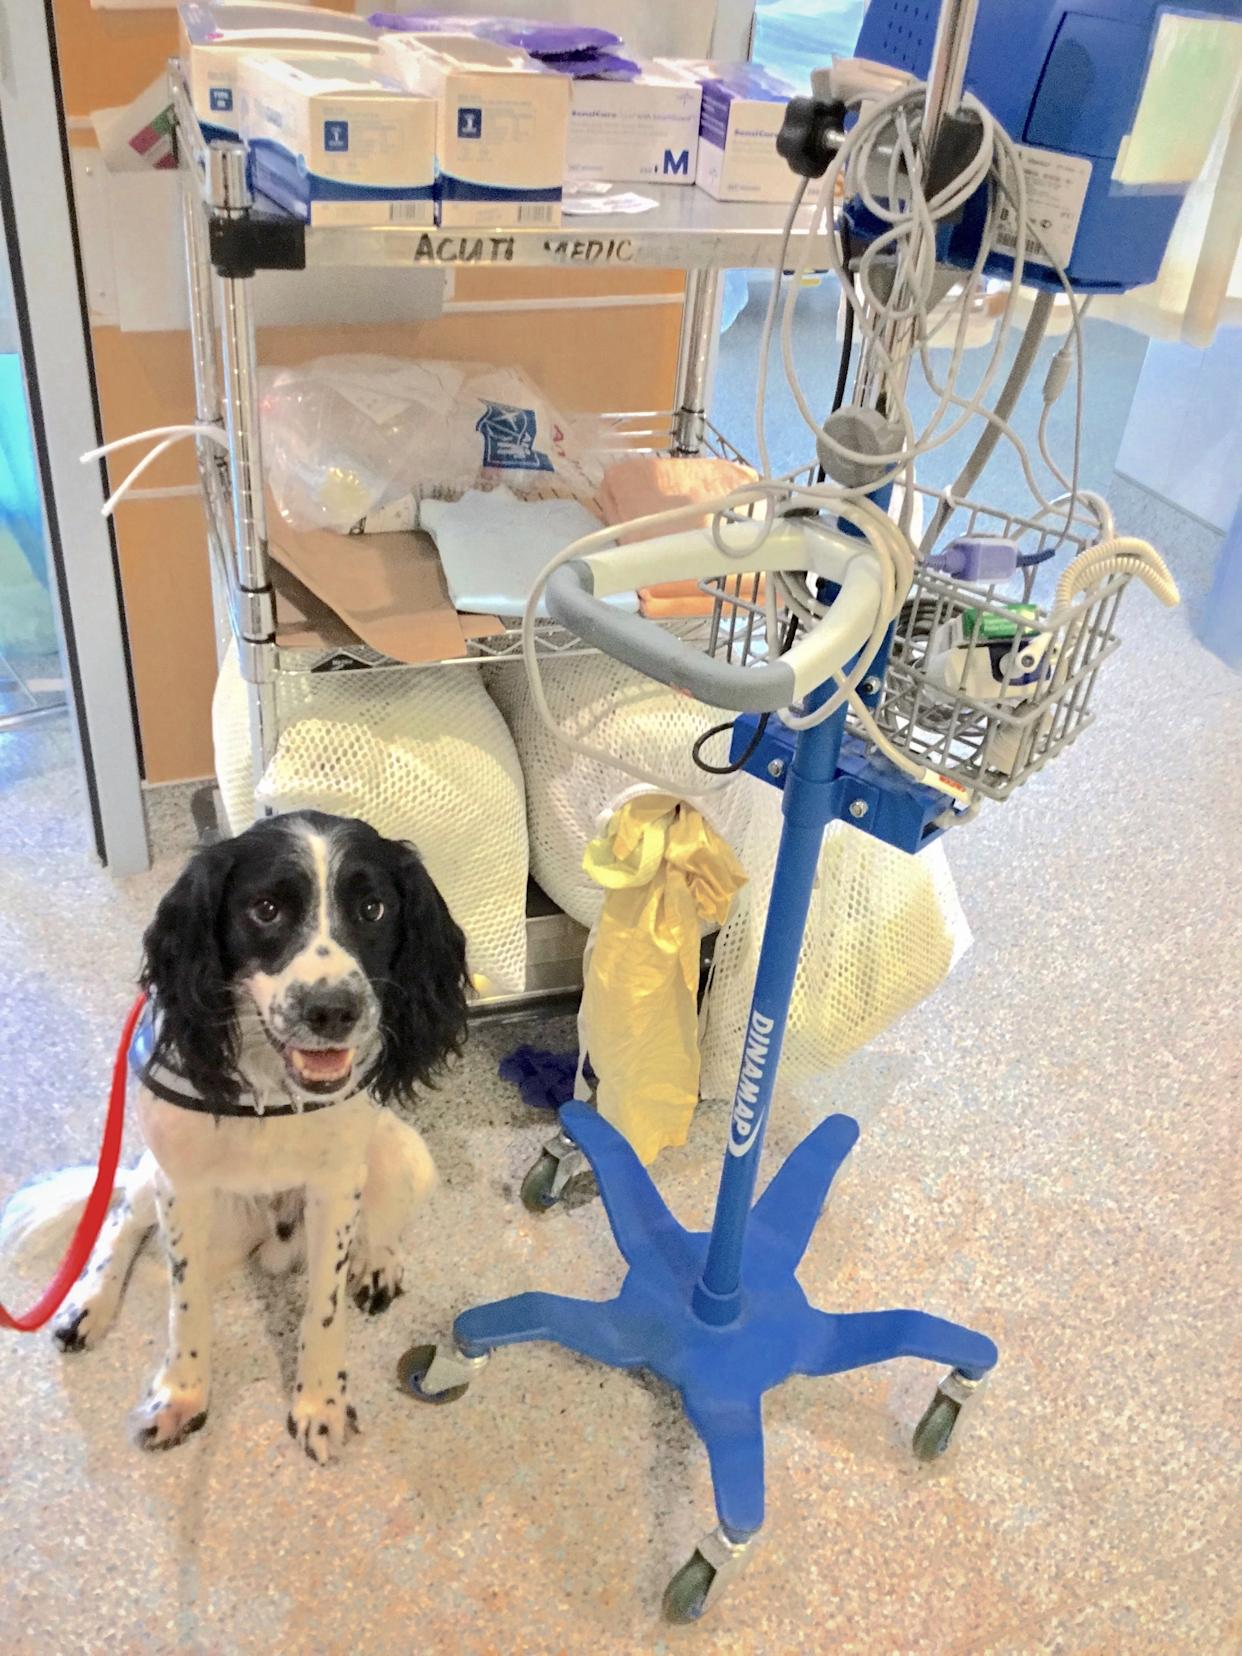 Angus, an English springer spaniel, sniffs out C. diff in a hospital.